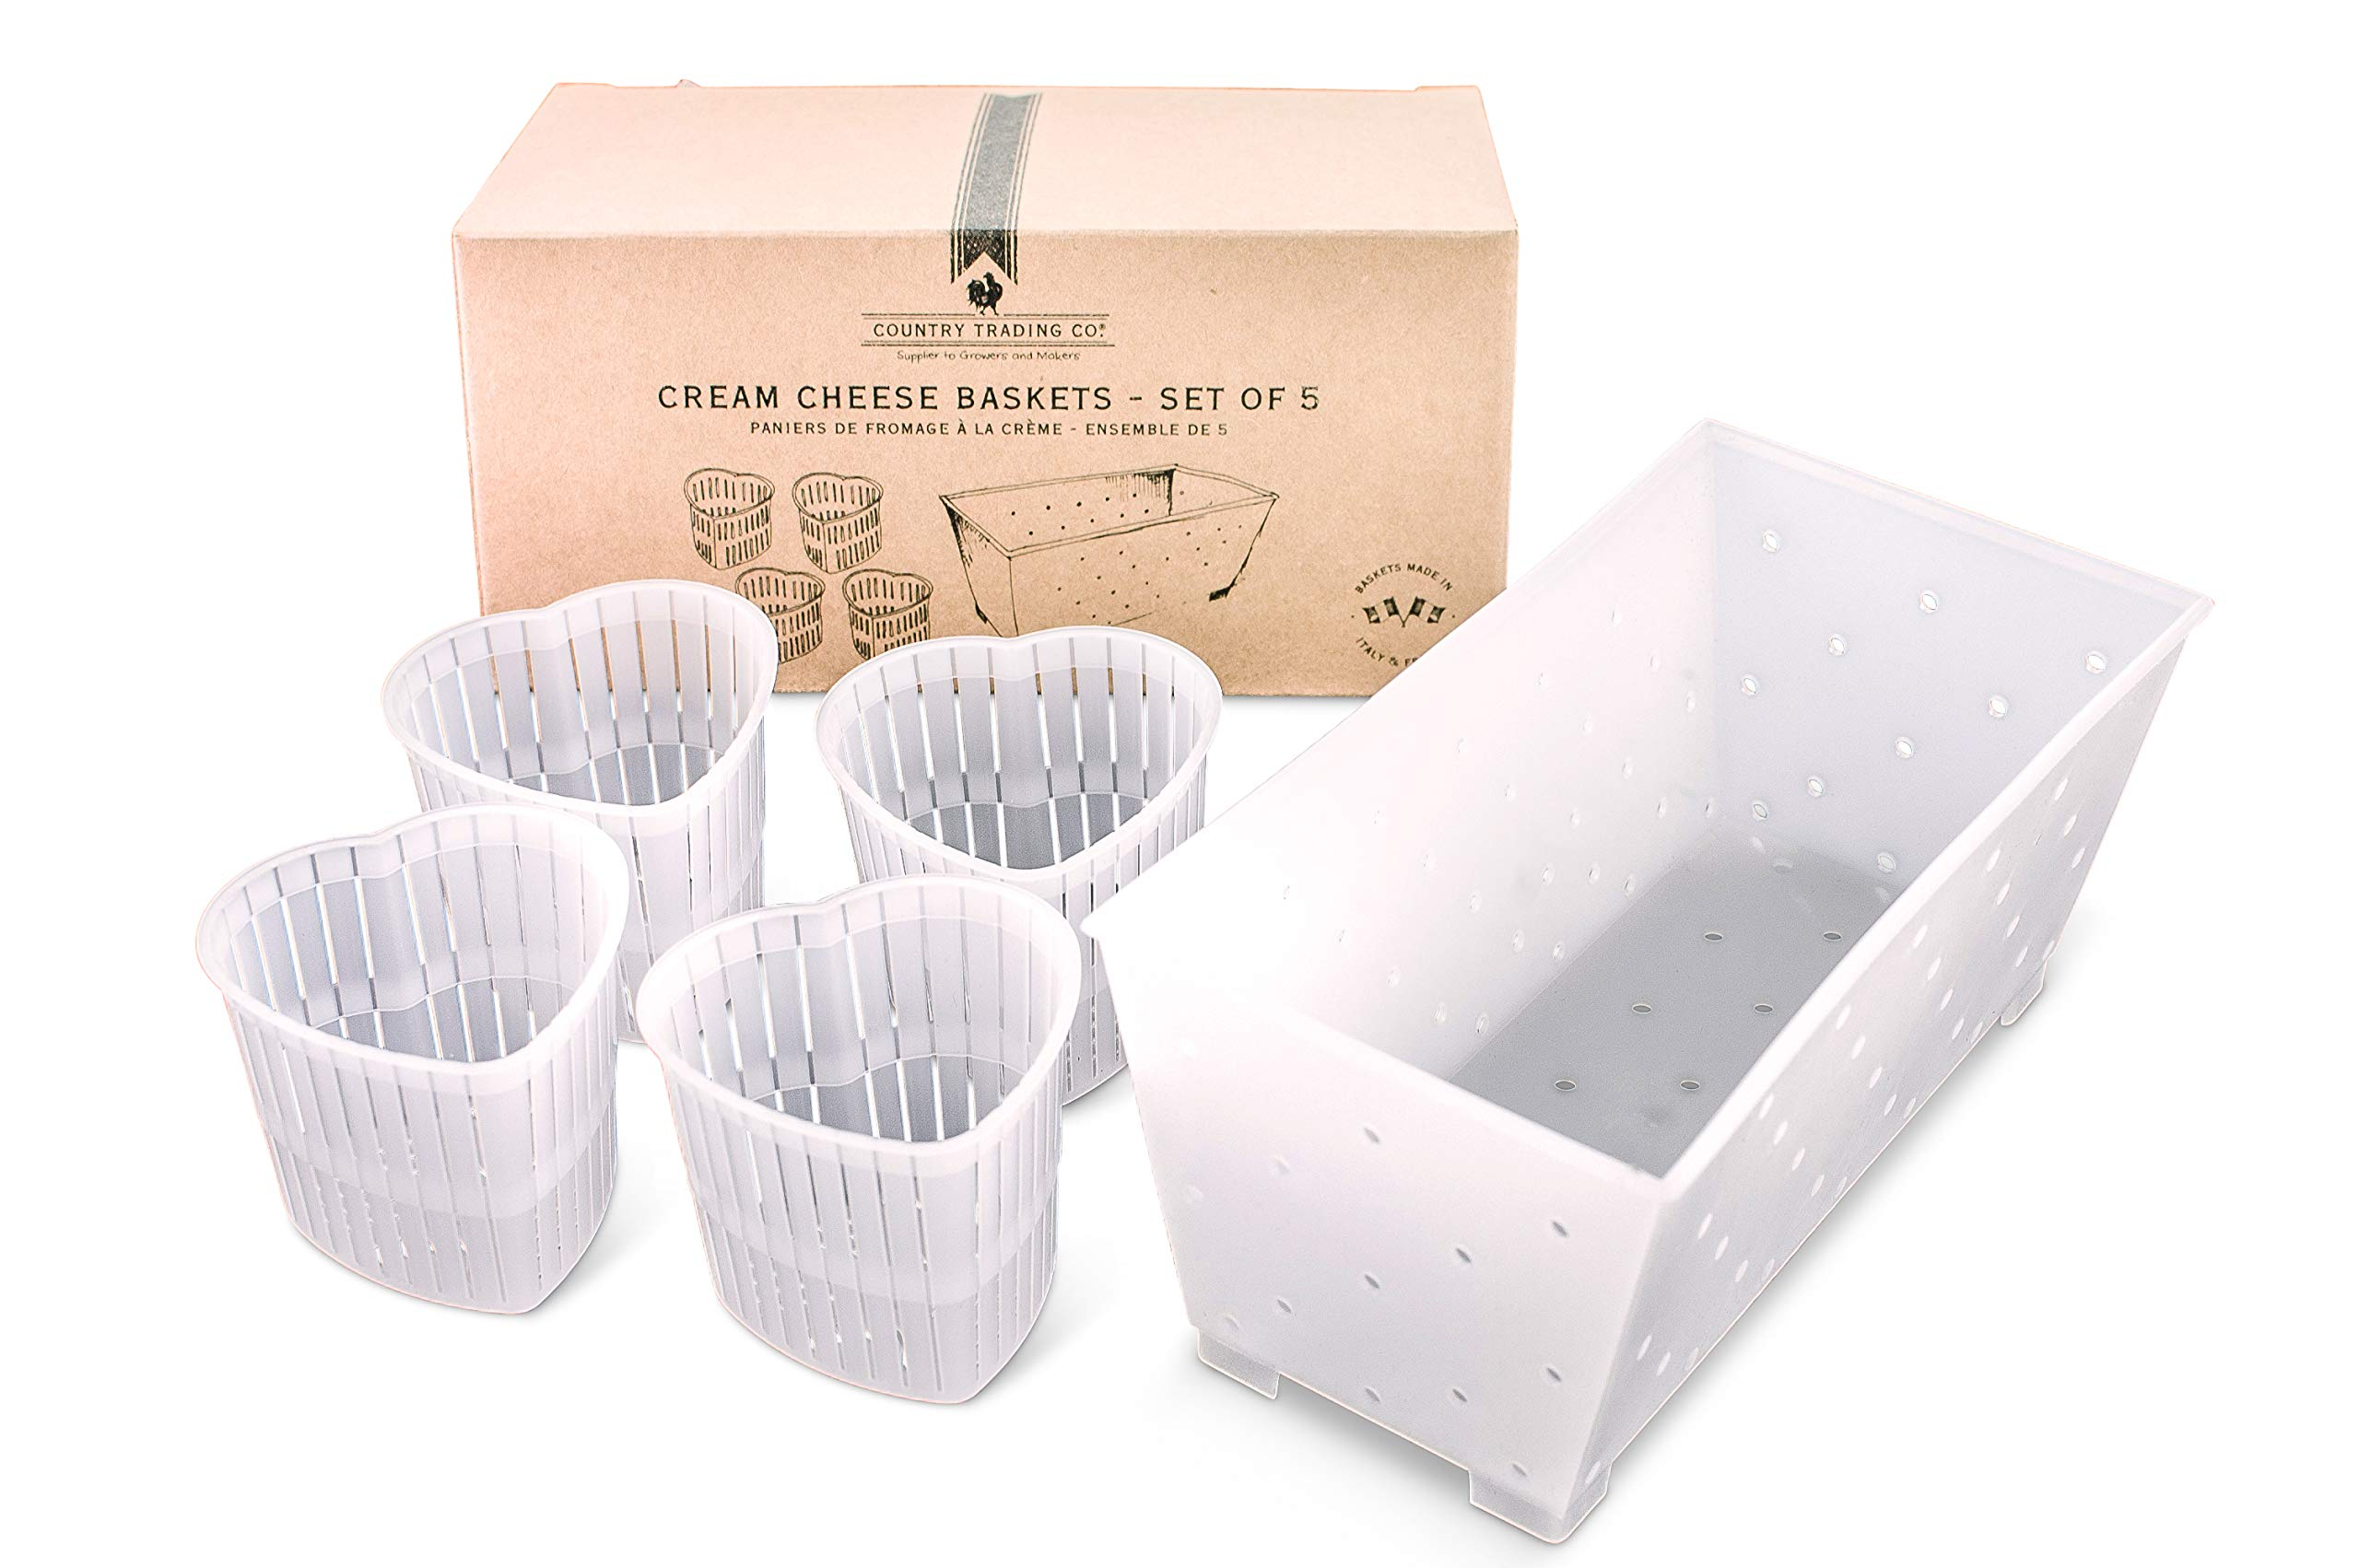 Cream Cheese Making Molds - Set of 5 Draining Baskets for Soft Cheeses and Vegan Cheese